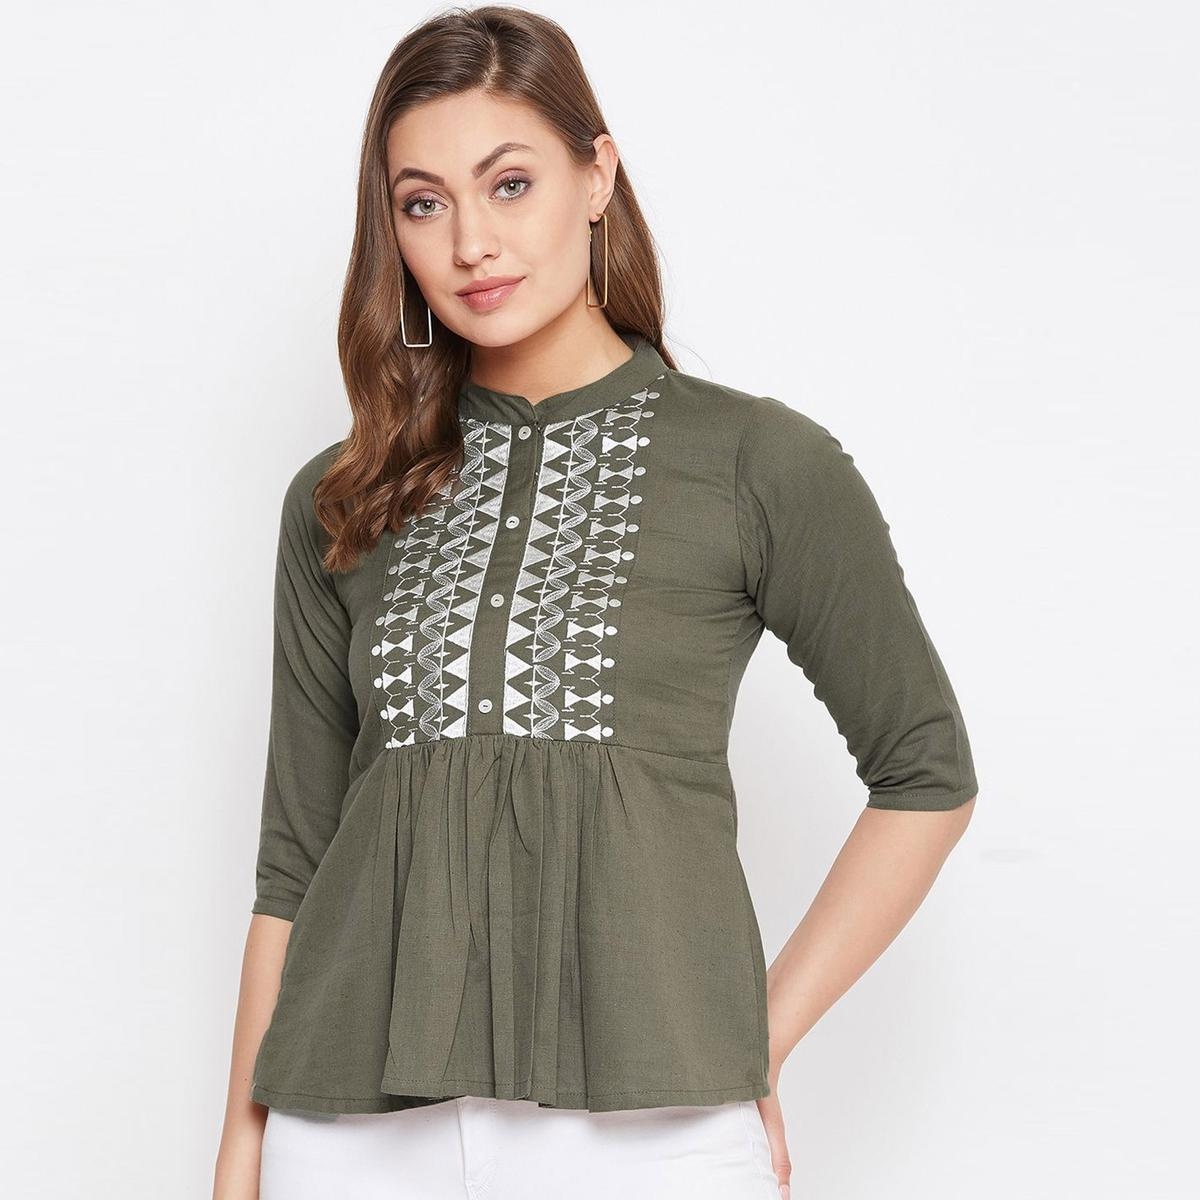 Winered Women Embroidered Grey Cotton Linen Blend Top